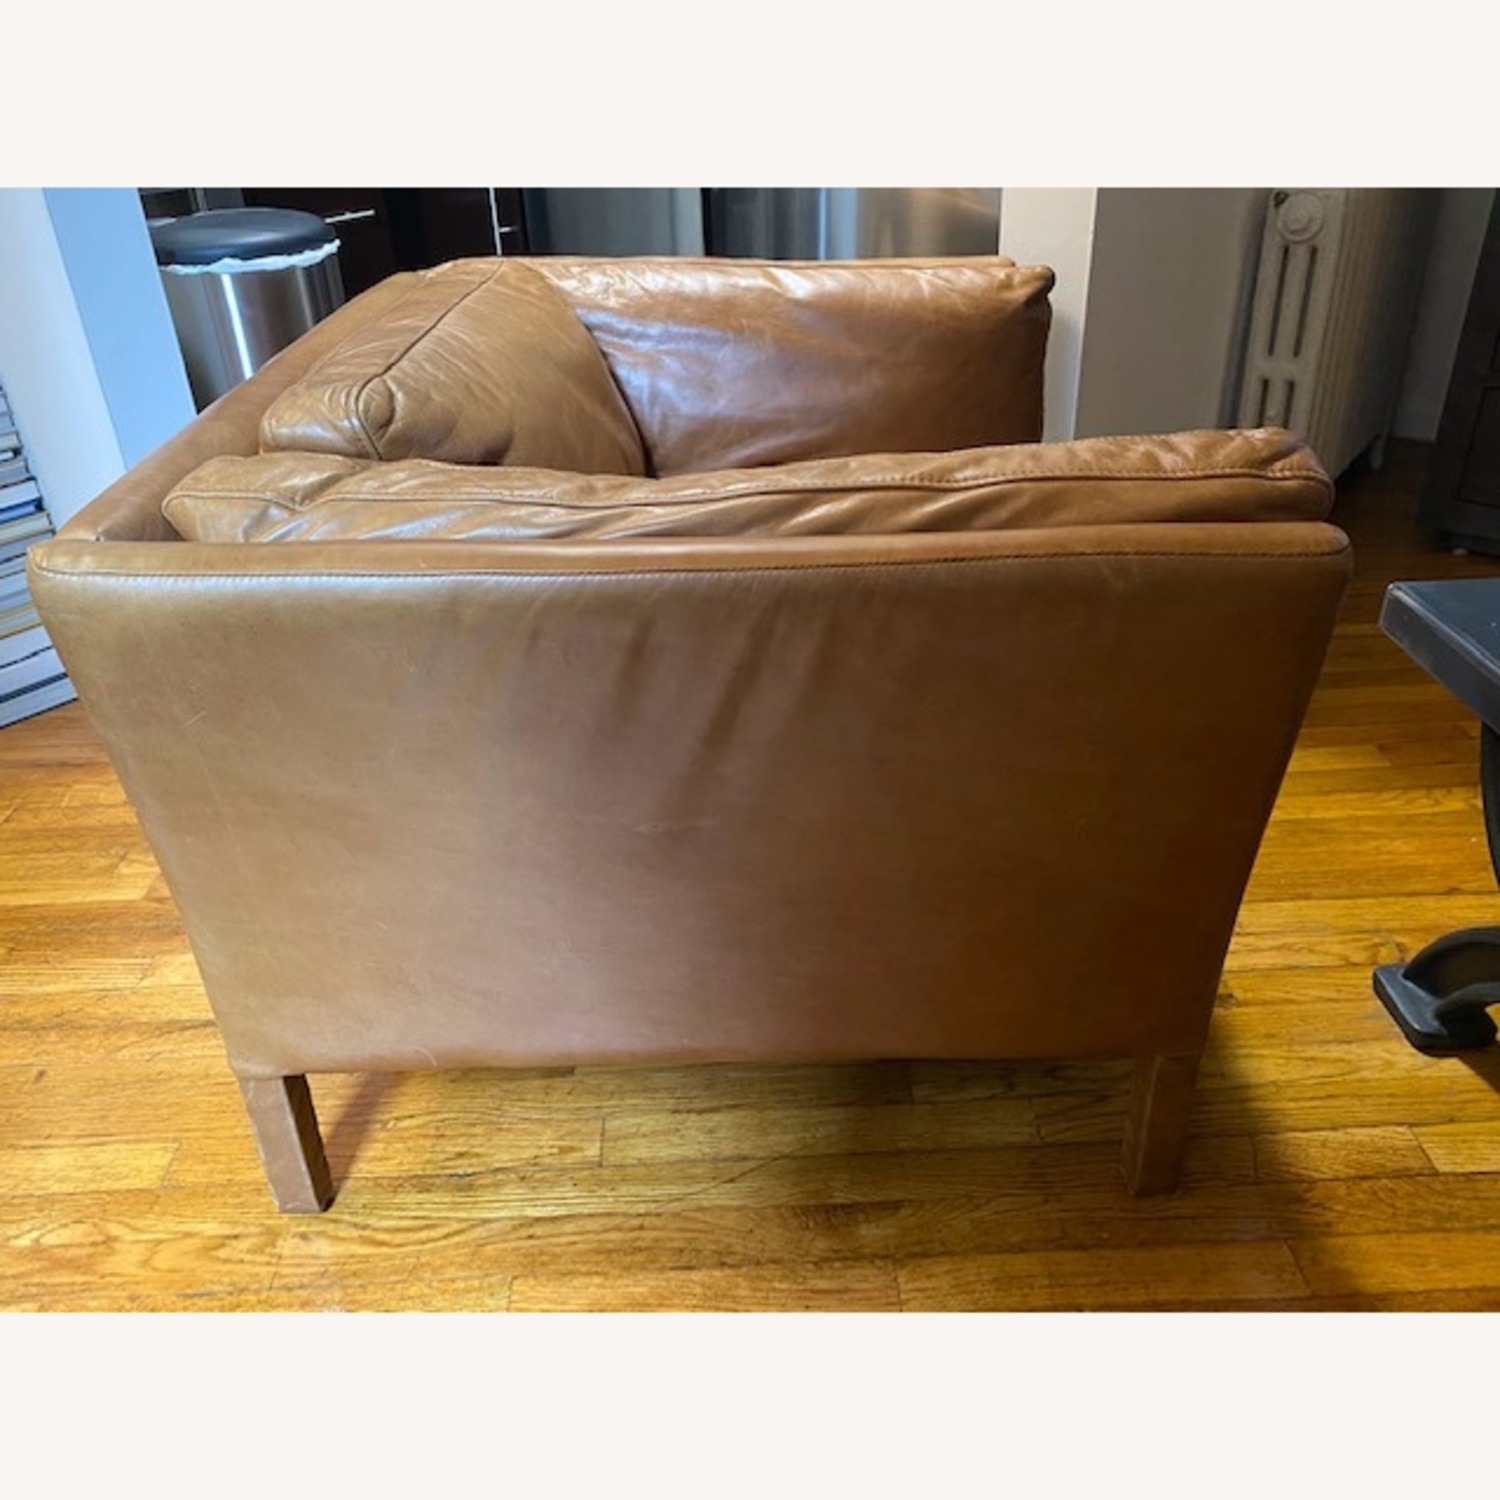 Restoration Hardware Leather Sorensen Chair - image-2